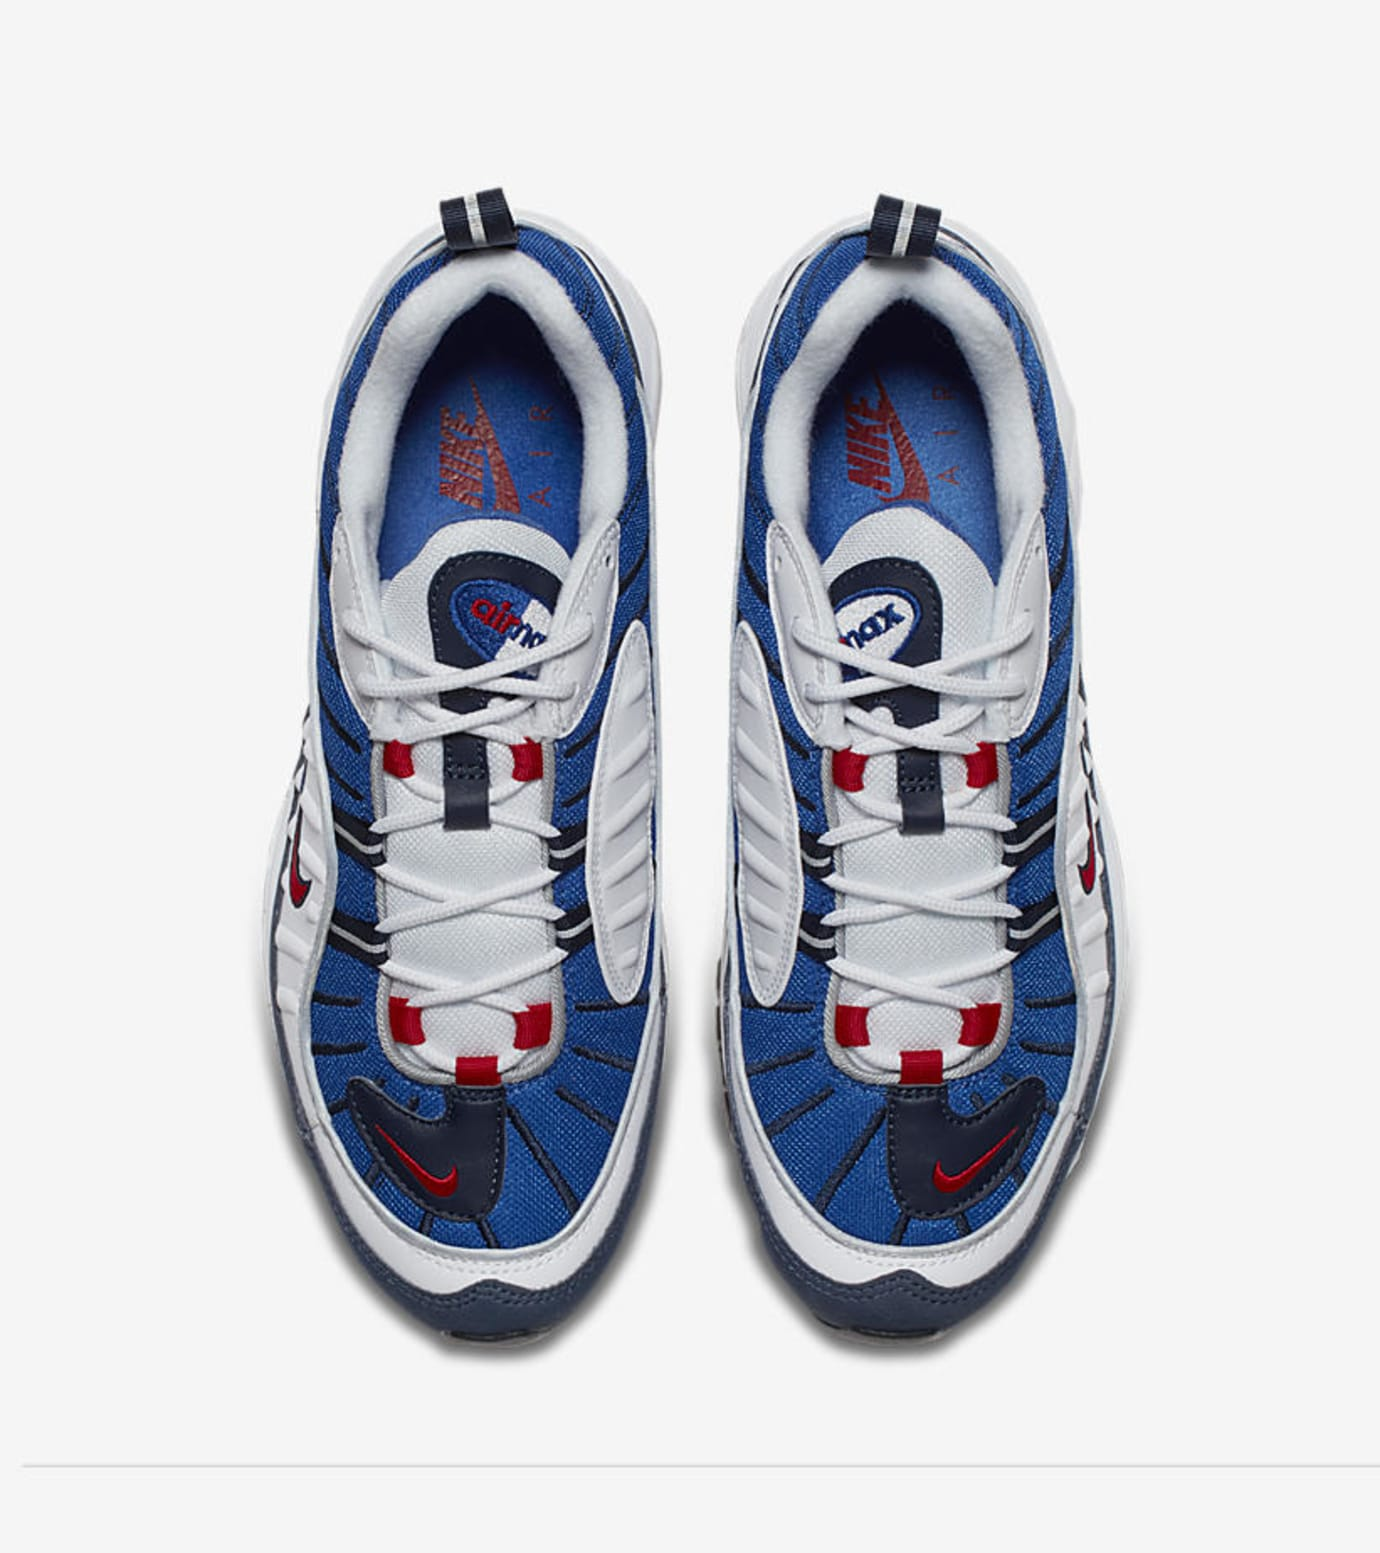 1c20d74dc500 Image via Nike Nike Air Max 98  Gundam  640744-100 (Top)